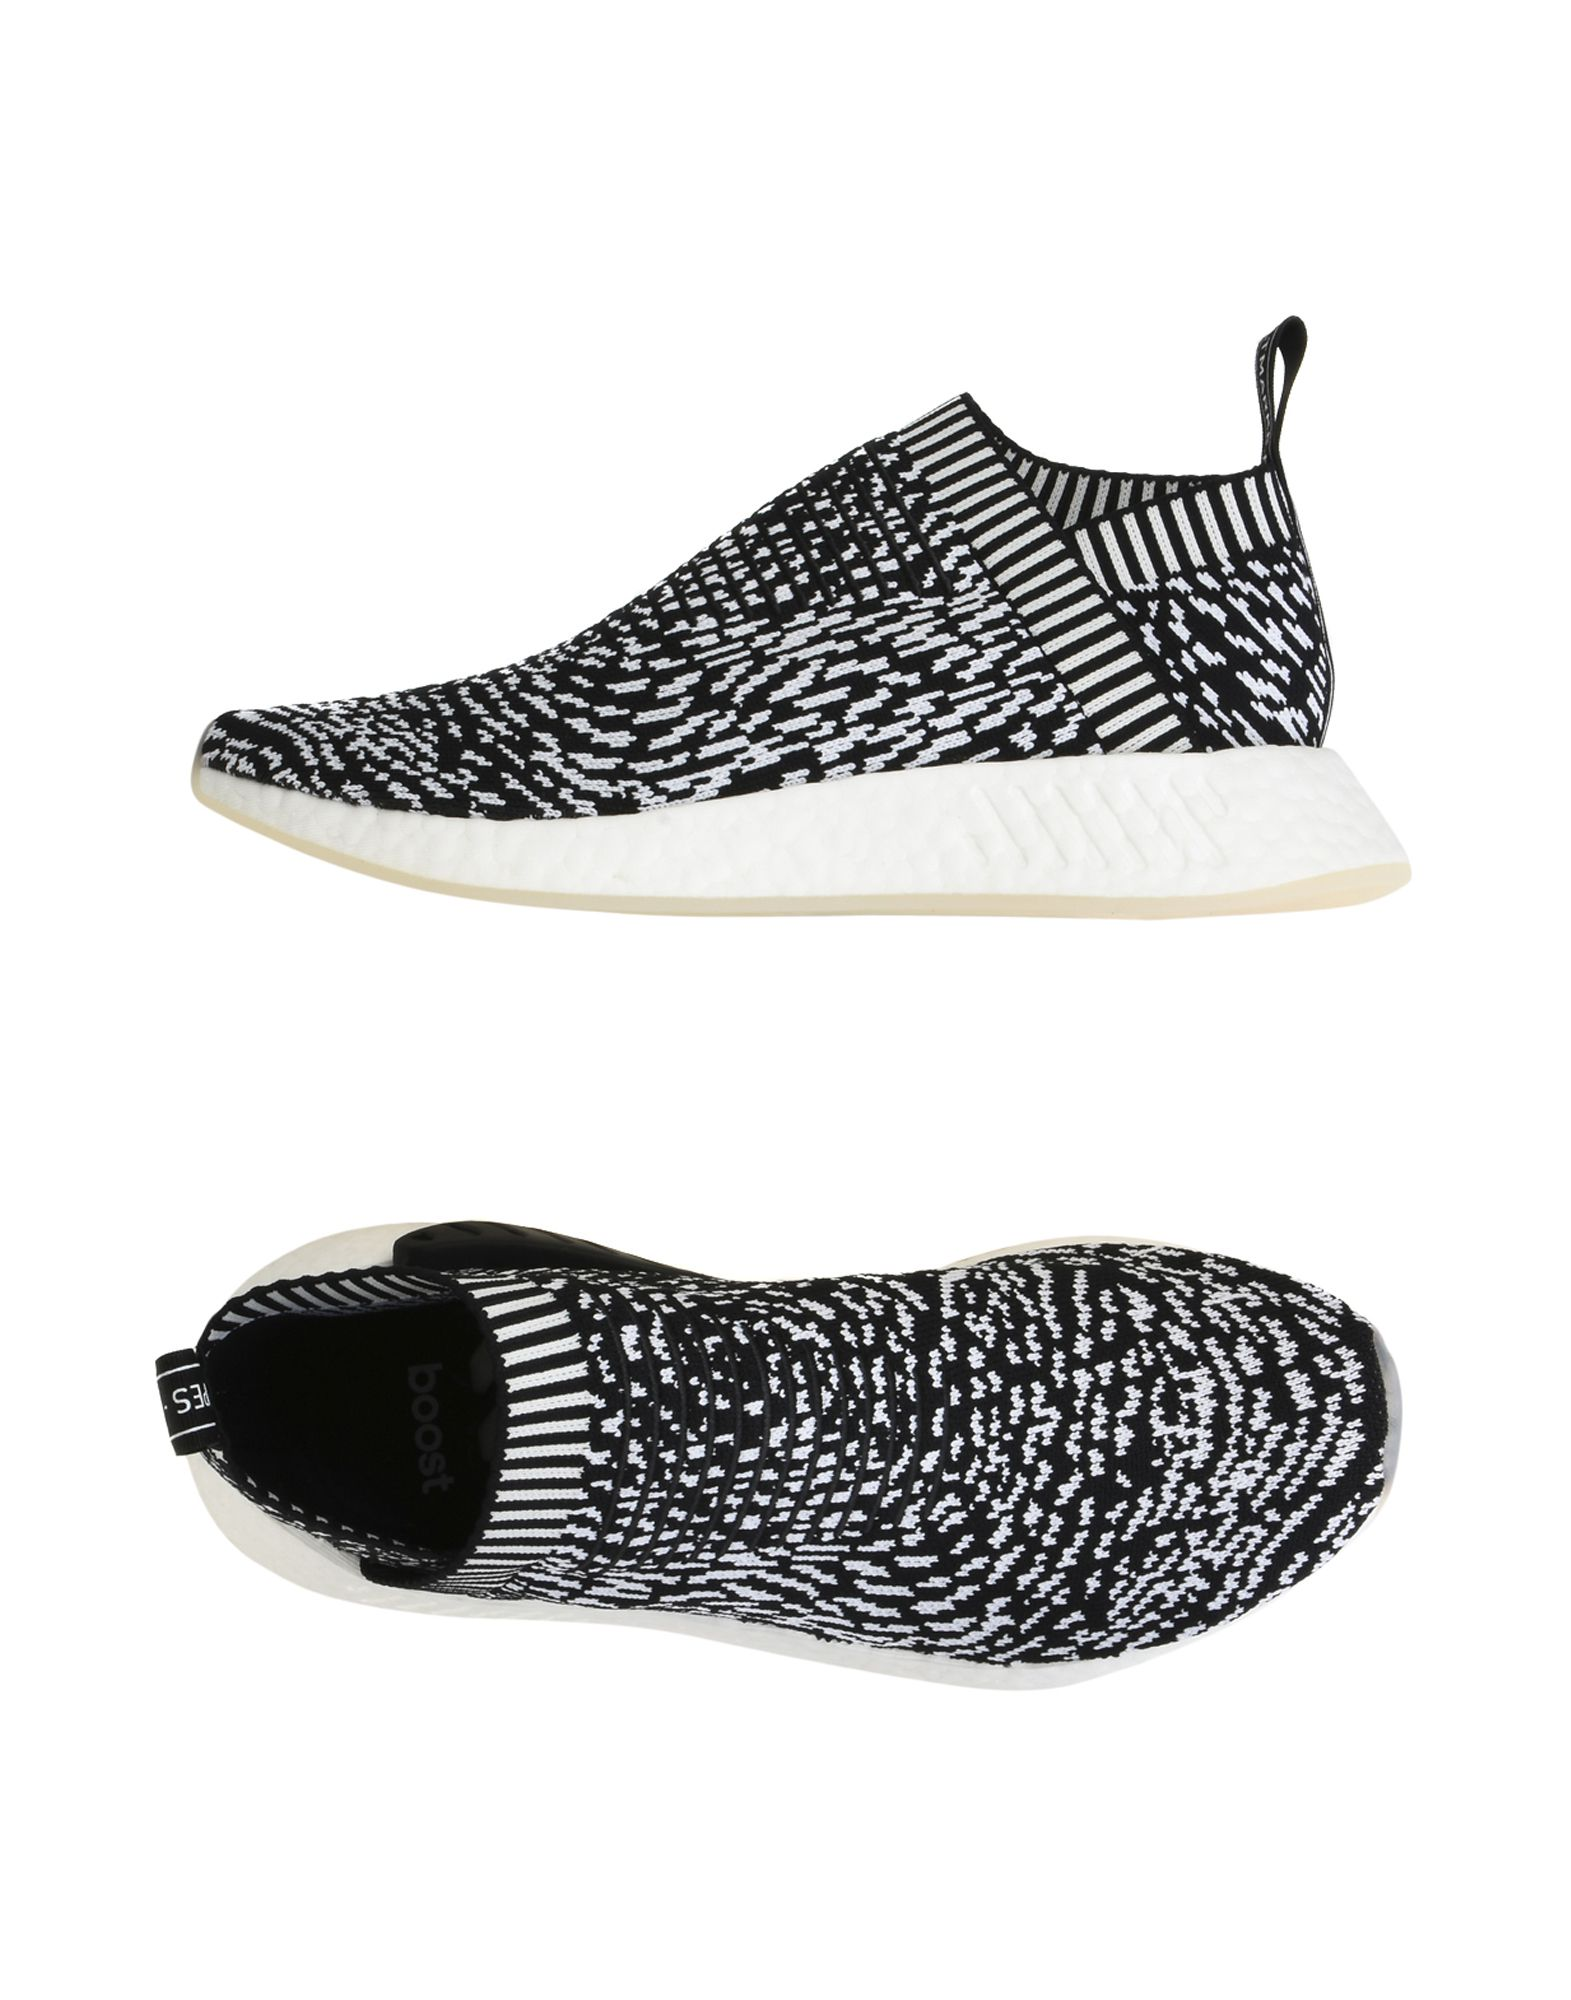 08d7510b72d88d Adidas Originals Nmd Cs2 Pk - Sneakers - Men Adidas Originals ...